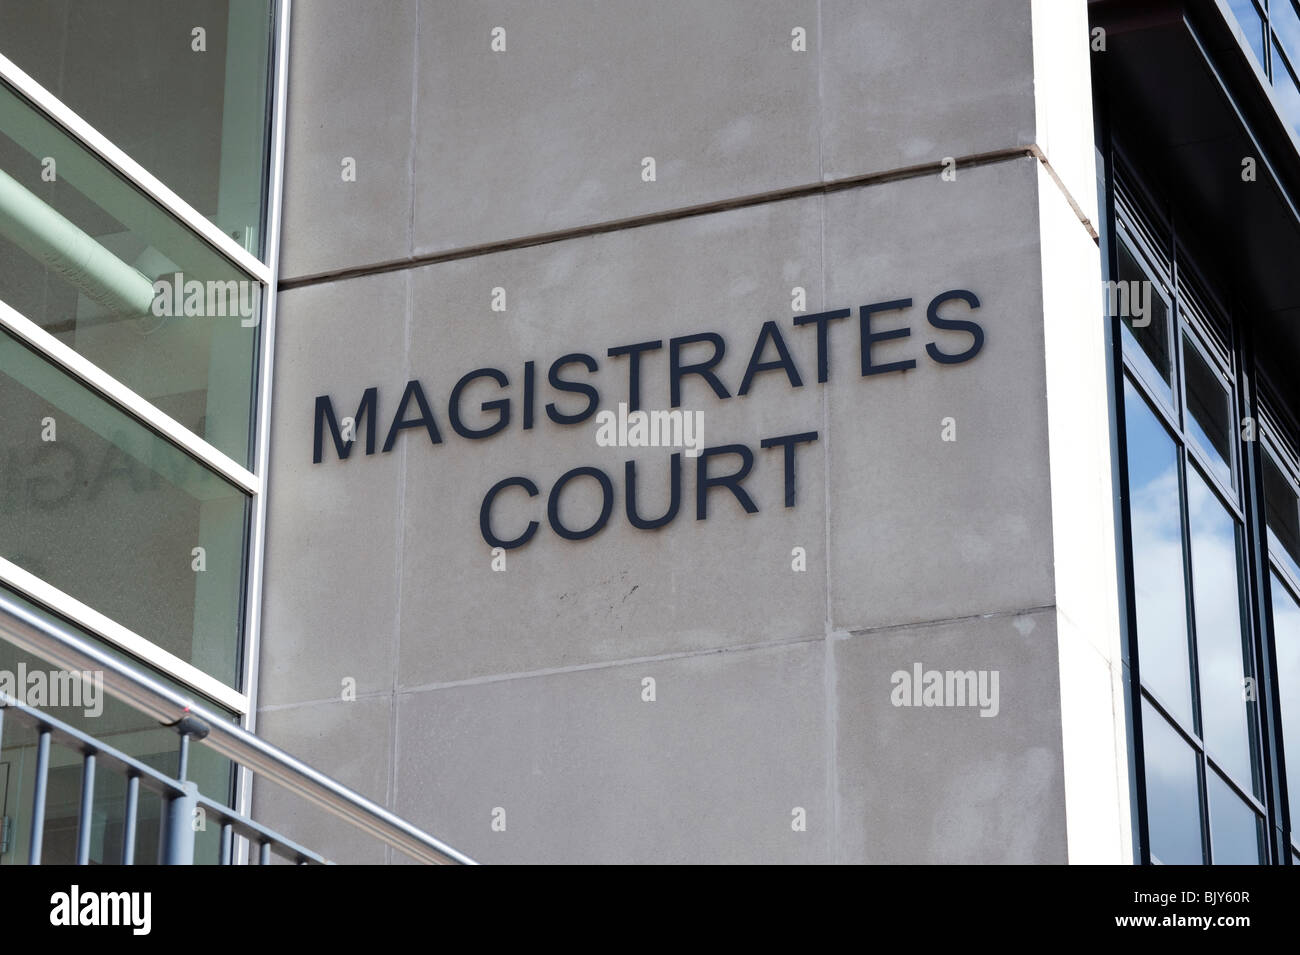 Hereford magistrates court, UK. Law court in Hereford City Centre. - Stock Image